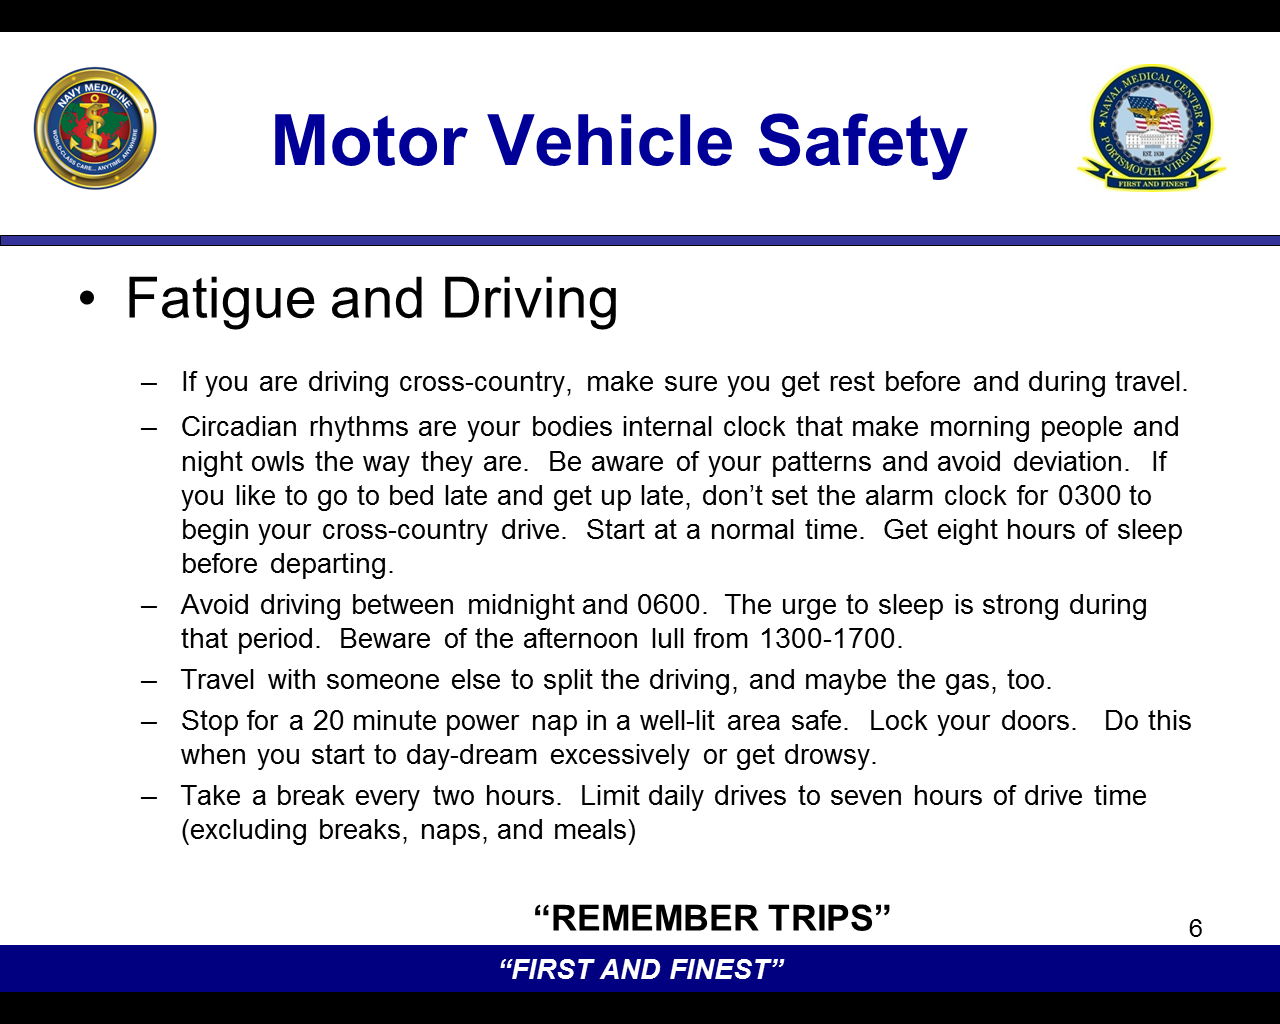 Commander 39 s blog thanksgiving safety brief motor Motor vehicle safety